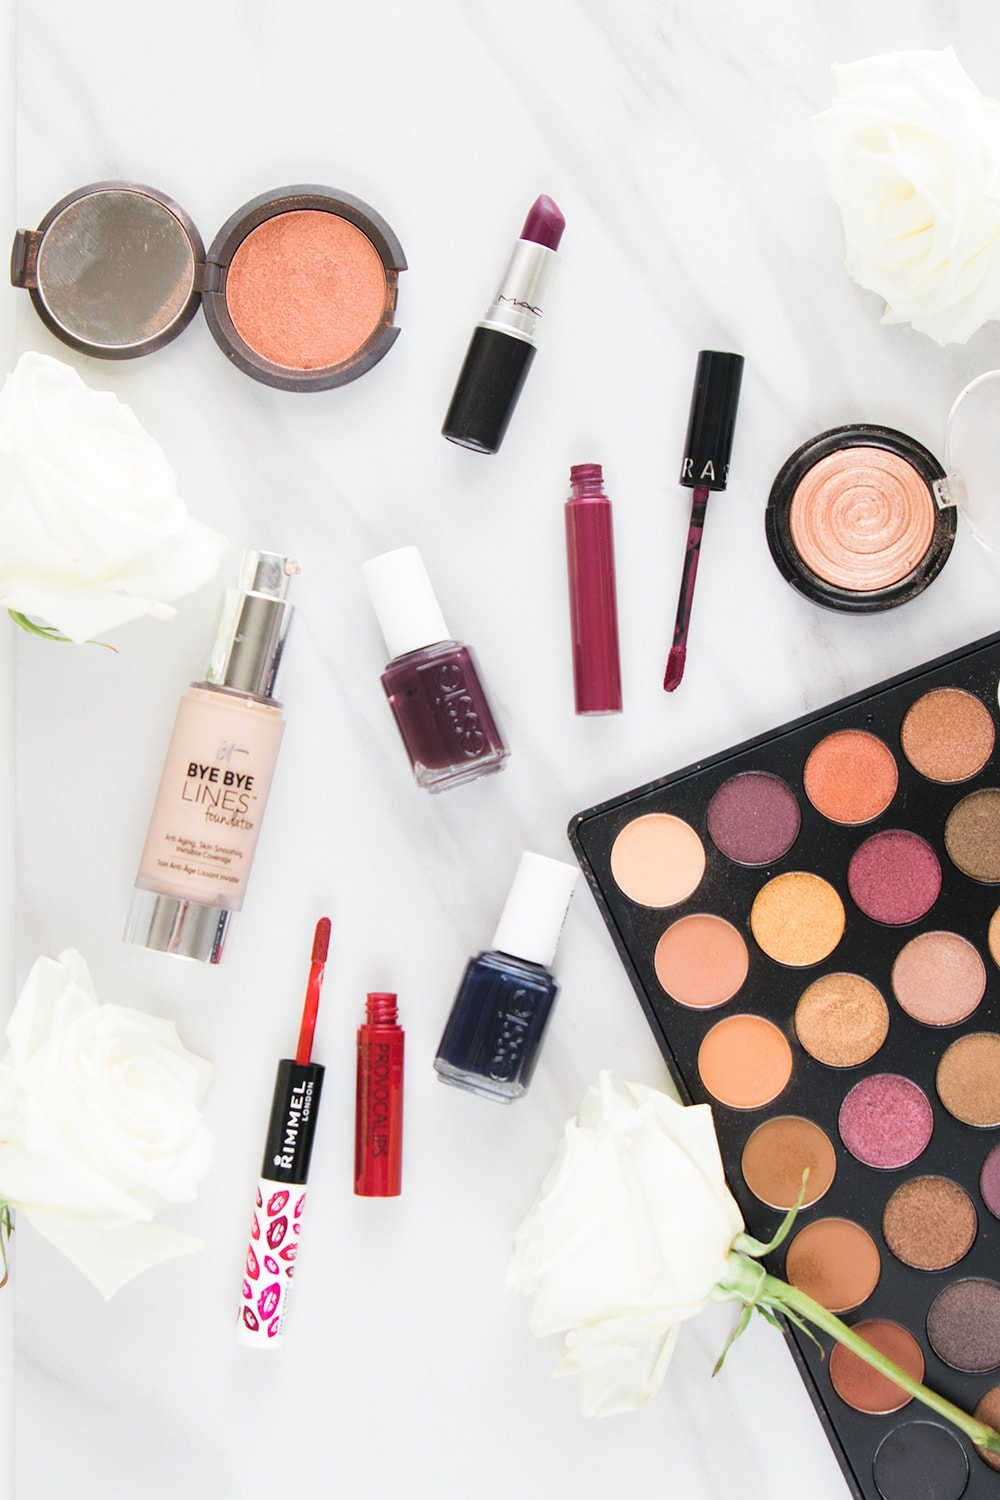 Fall makeup essentials - click through to see the whole list! - Fall Makeup Essentials You'll Want to Get Your Hands On by Houston beauty blogger Meg O. on the Go